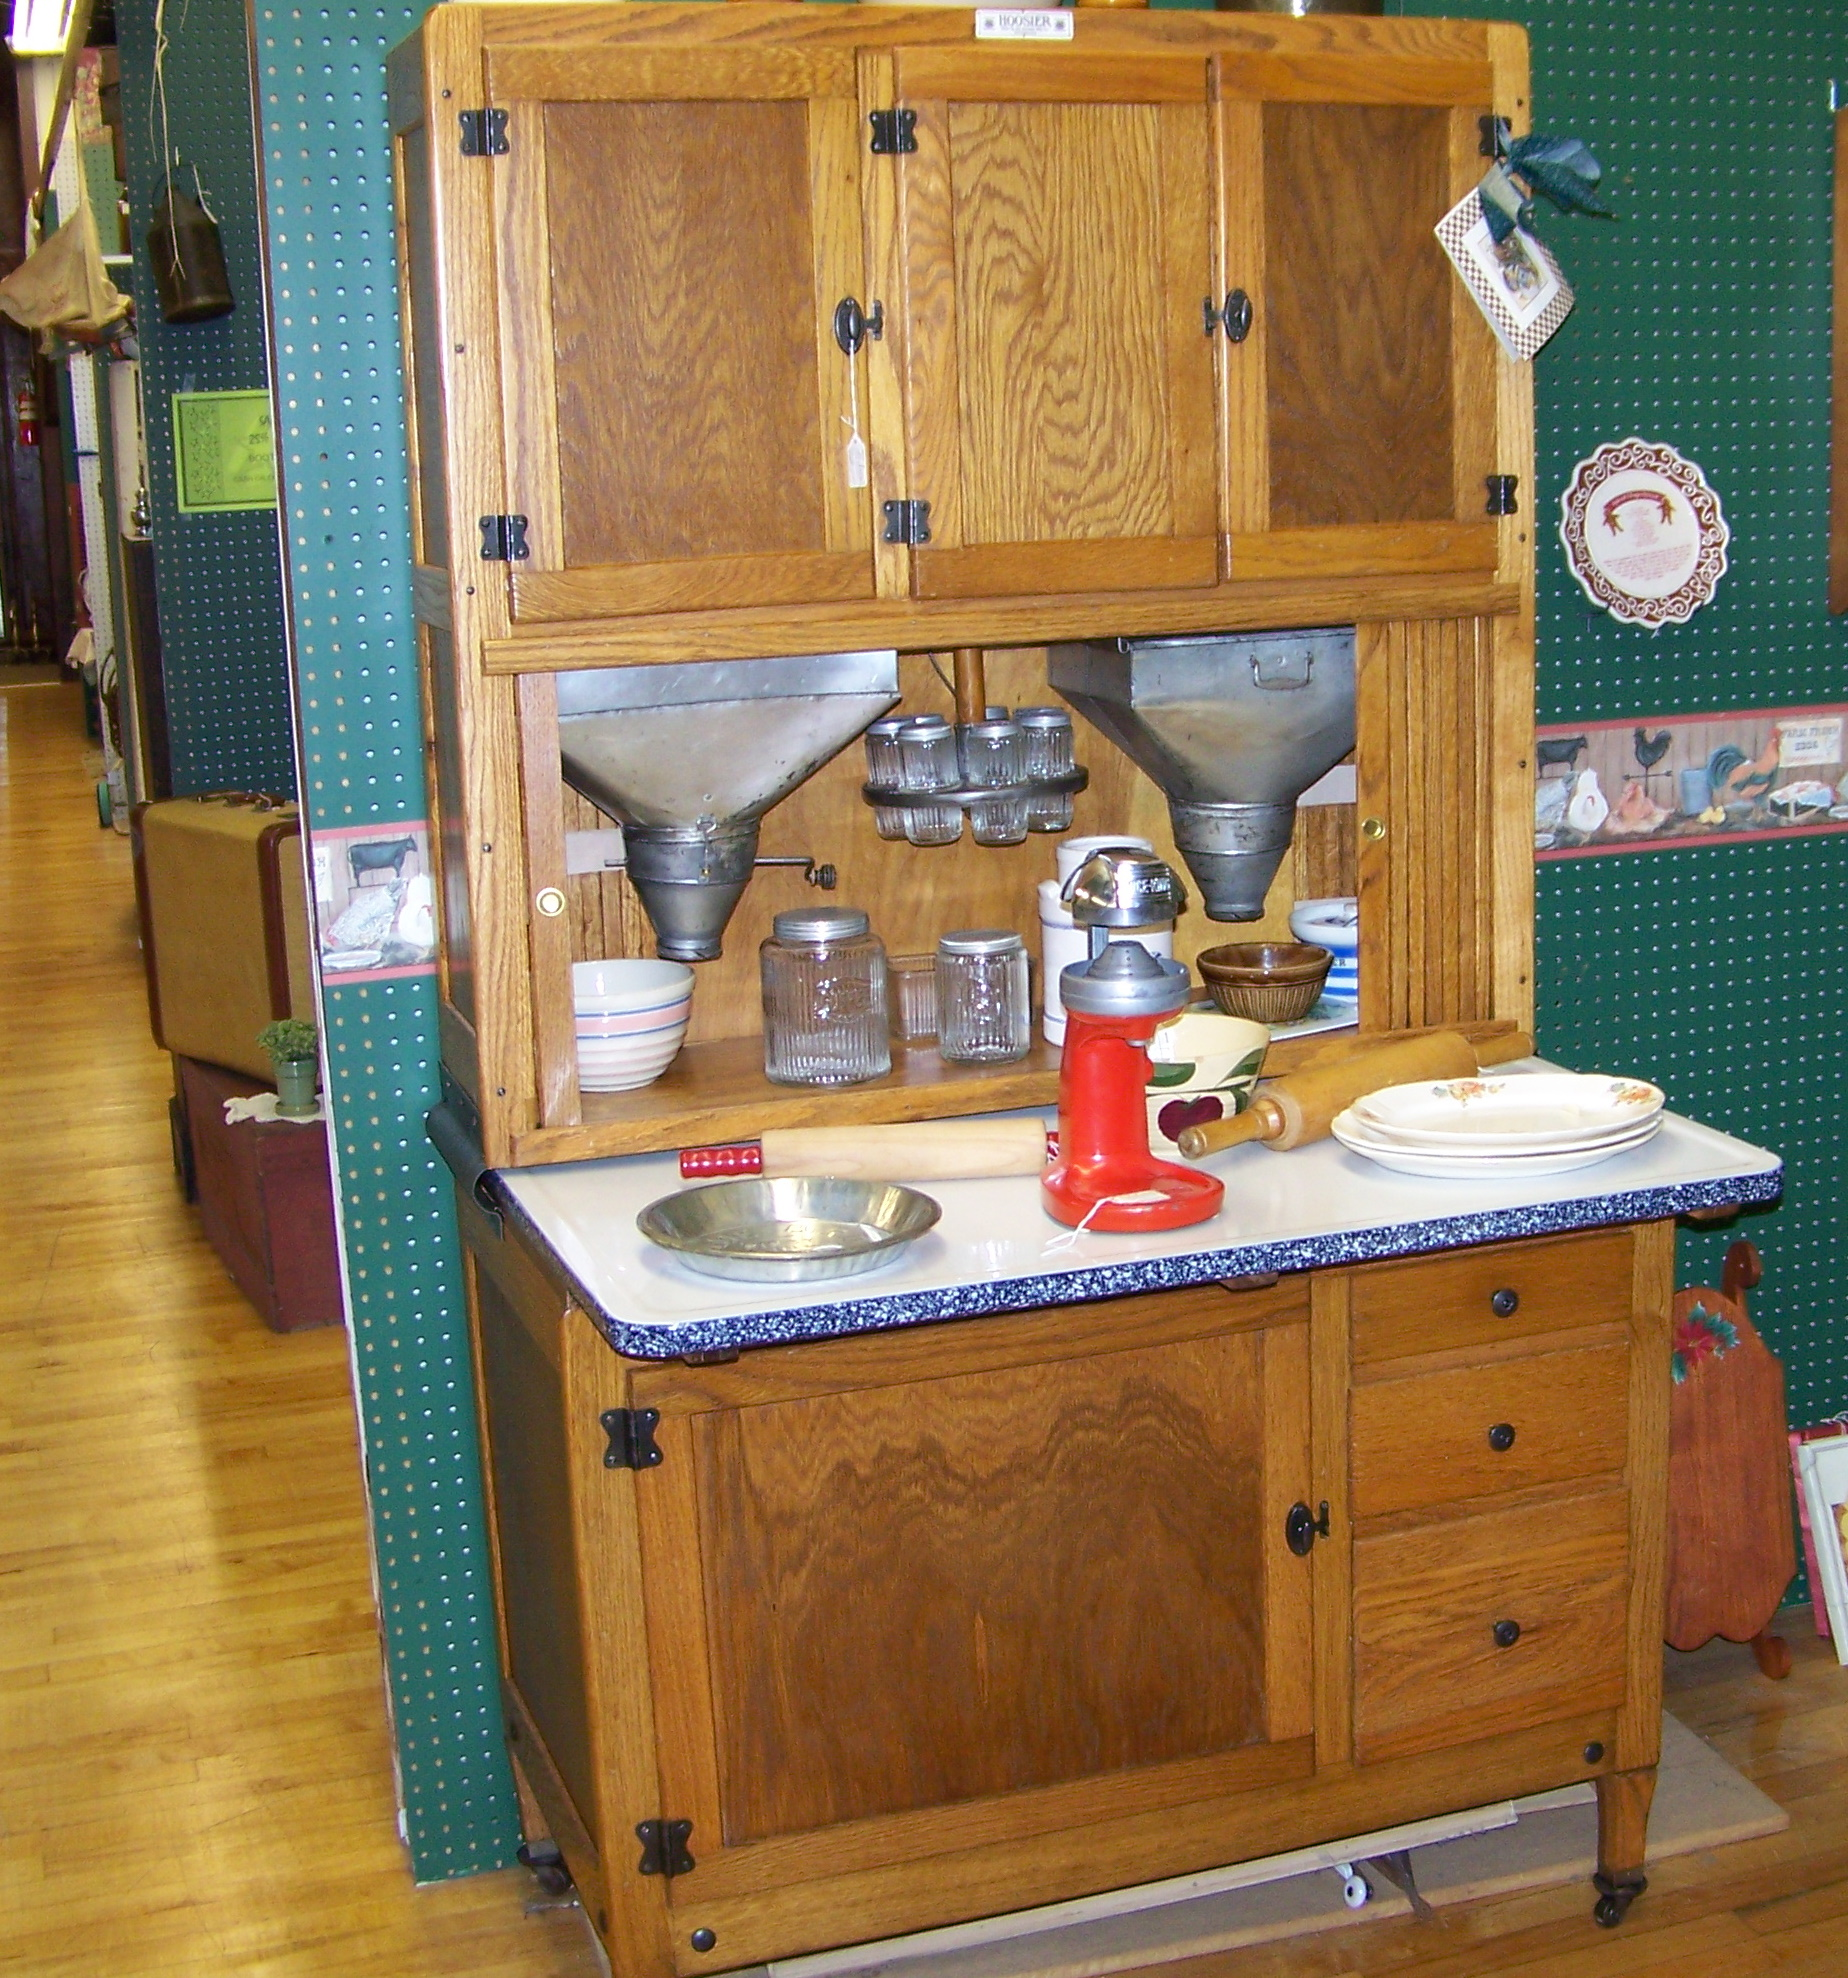 furniture hardware furniture hardware. Furniture Hardware is our specialty  Antique restoration parts and